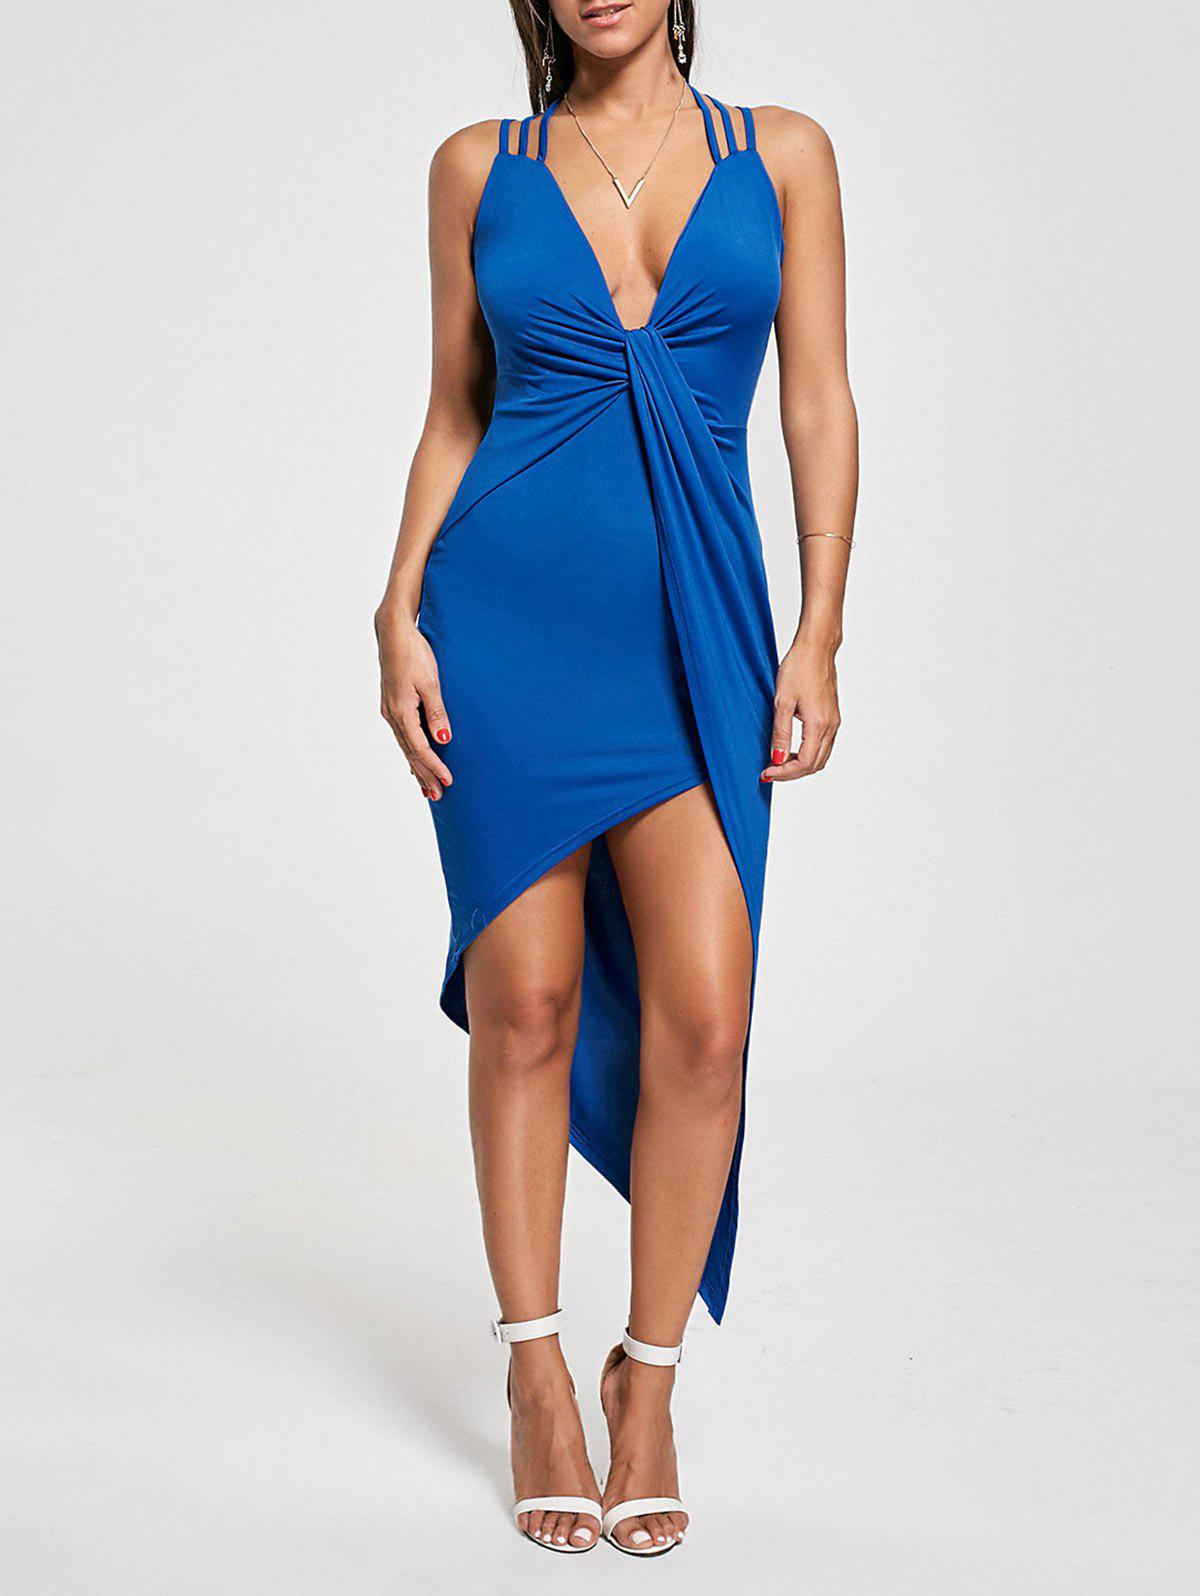 Criss Cross Cutout Front Twist Asymmetric Club Dress - BLUE M